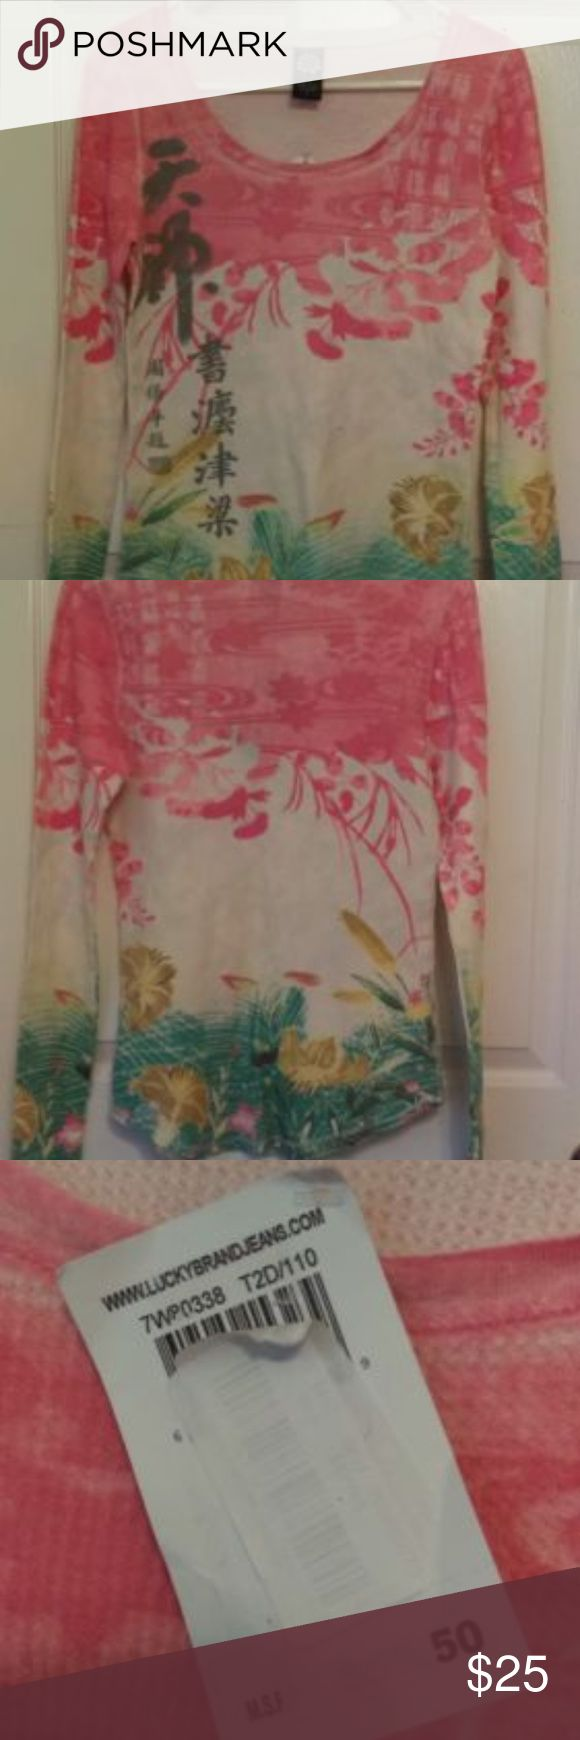 Lucky Brand Asian Inspired Floral Thermal Top Sz L You are buying a Lucky Brand Blouse  Size:Large  CONDITION: no stains, rips or damage.  LOCATION: From a pet free and smoke free home!  SHIPPING: We ship all items within 1 business day of your payment clearing  (excludes weekend and holidays) Lucky Brand Tops Tees - Long Sleeve